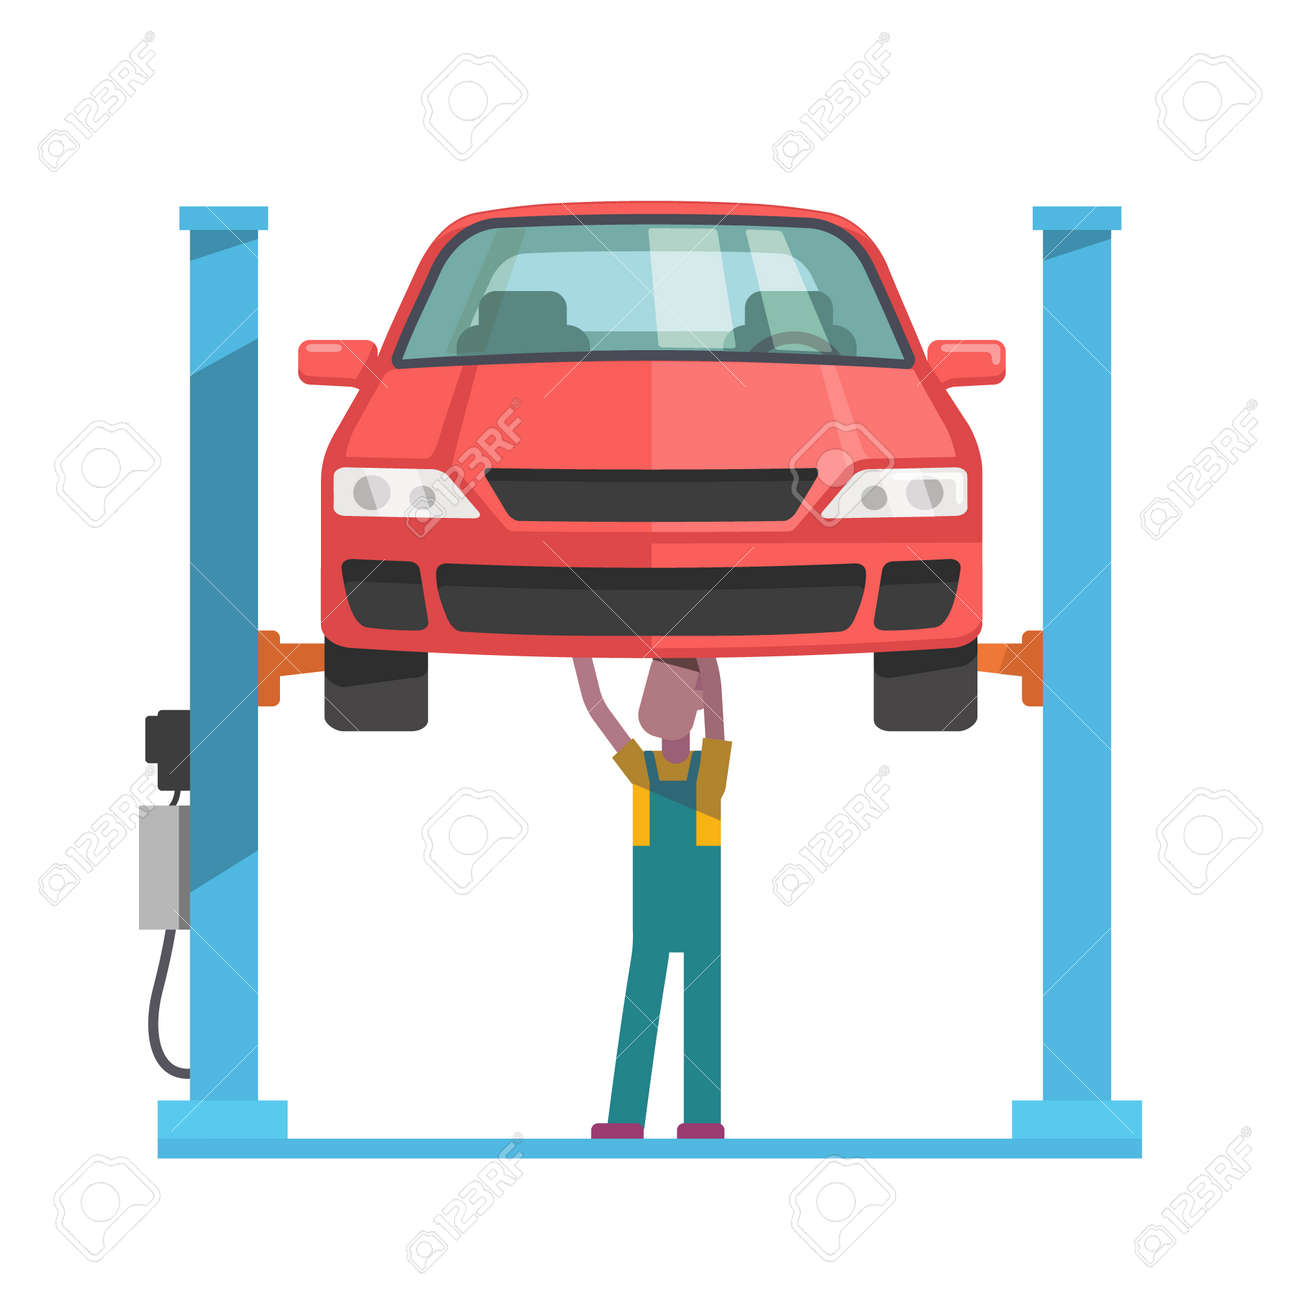 Mechanic standing under underbody and repairing a car lifted on auto hoist. Front view. Flat style vector illustration isolated on white background. - 46607575